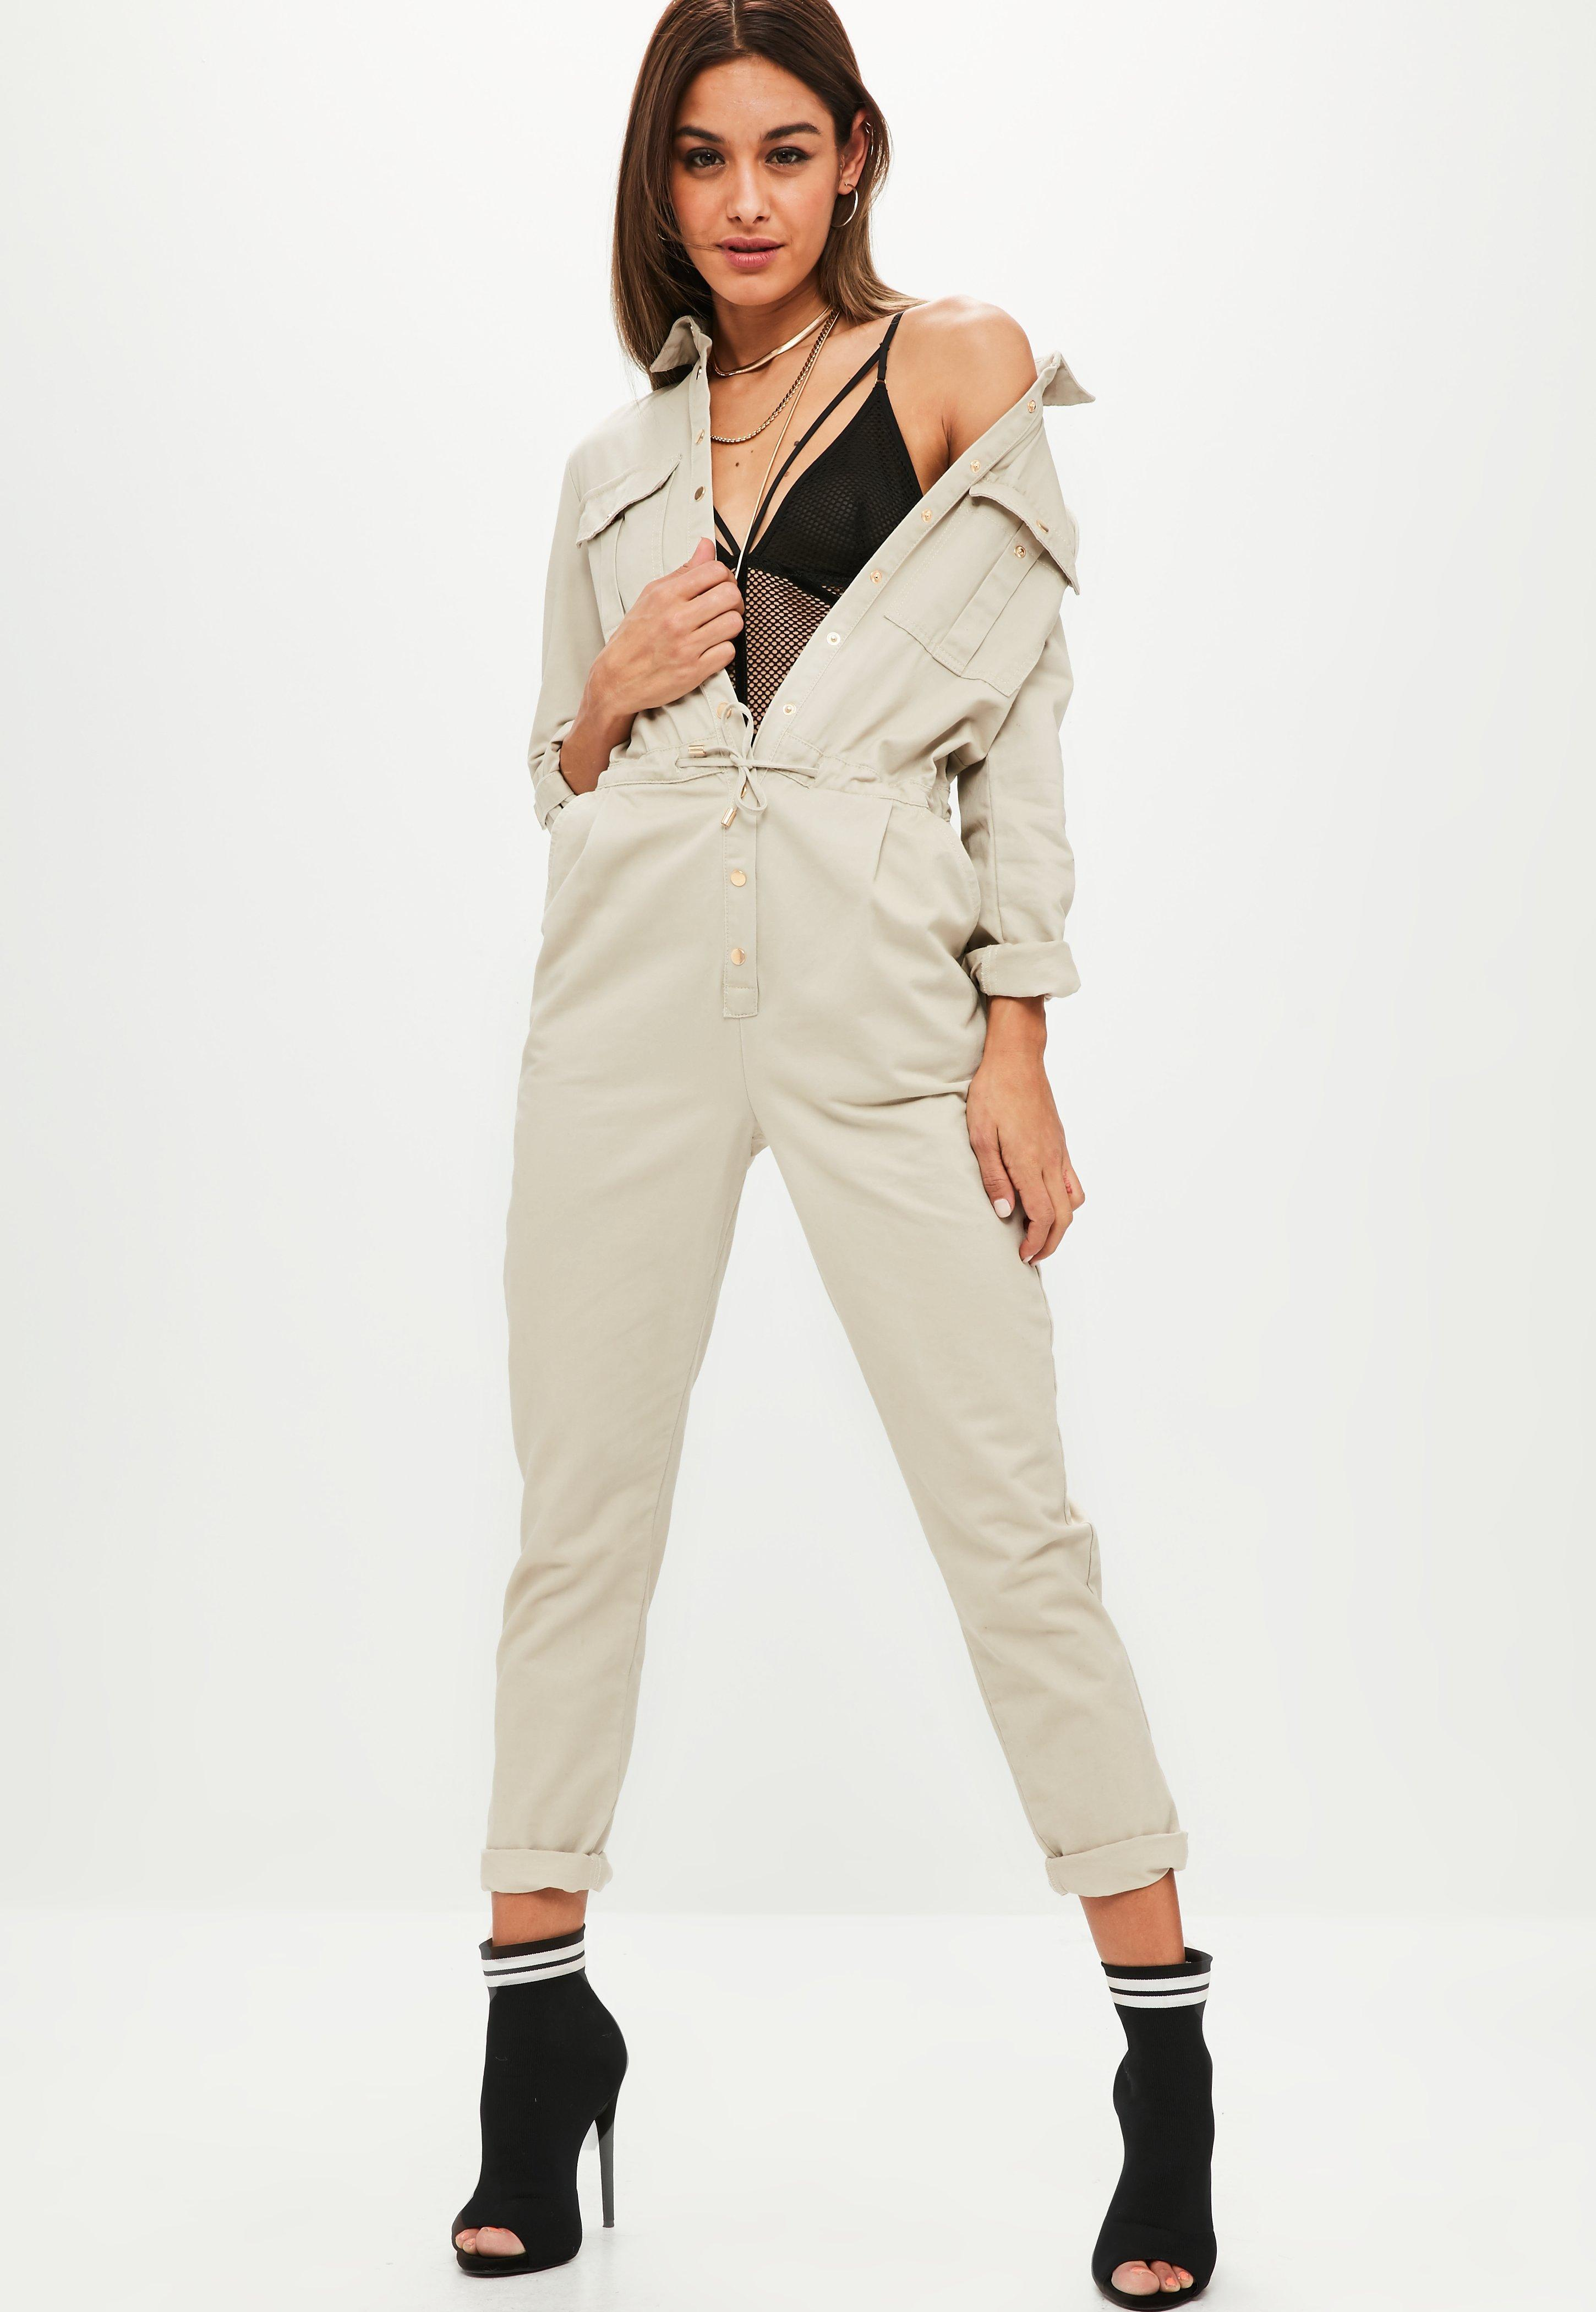 42217bc4eb1f Missguided Cream Utility Jumpsuit in Natural - Lyst